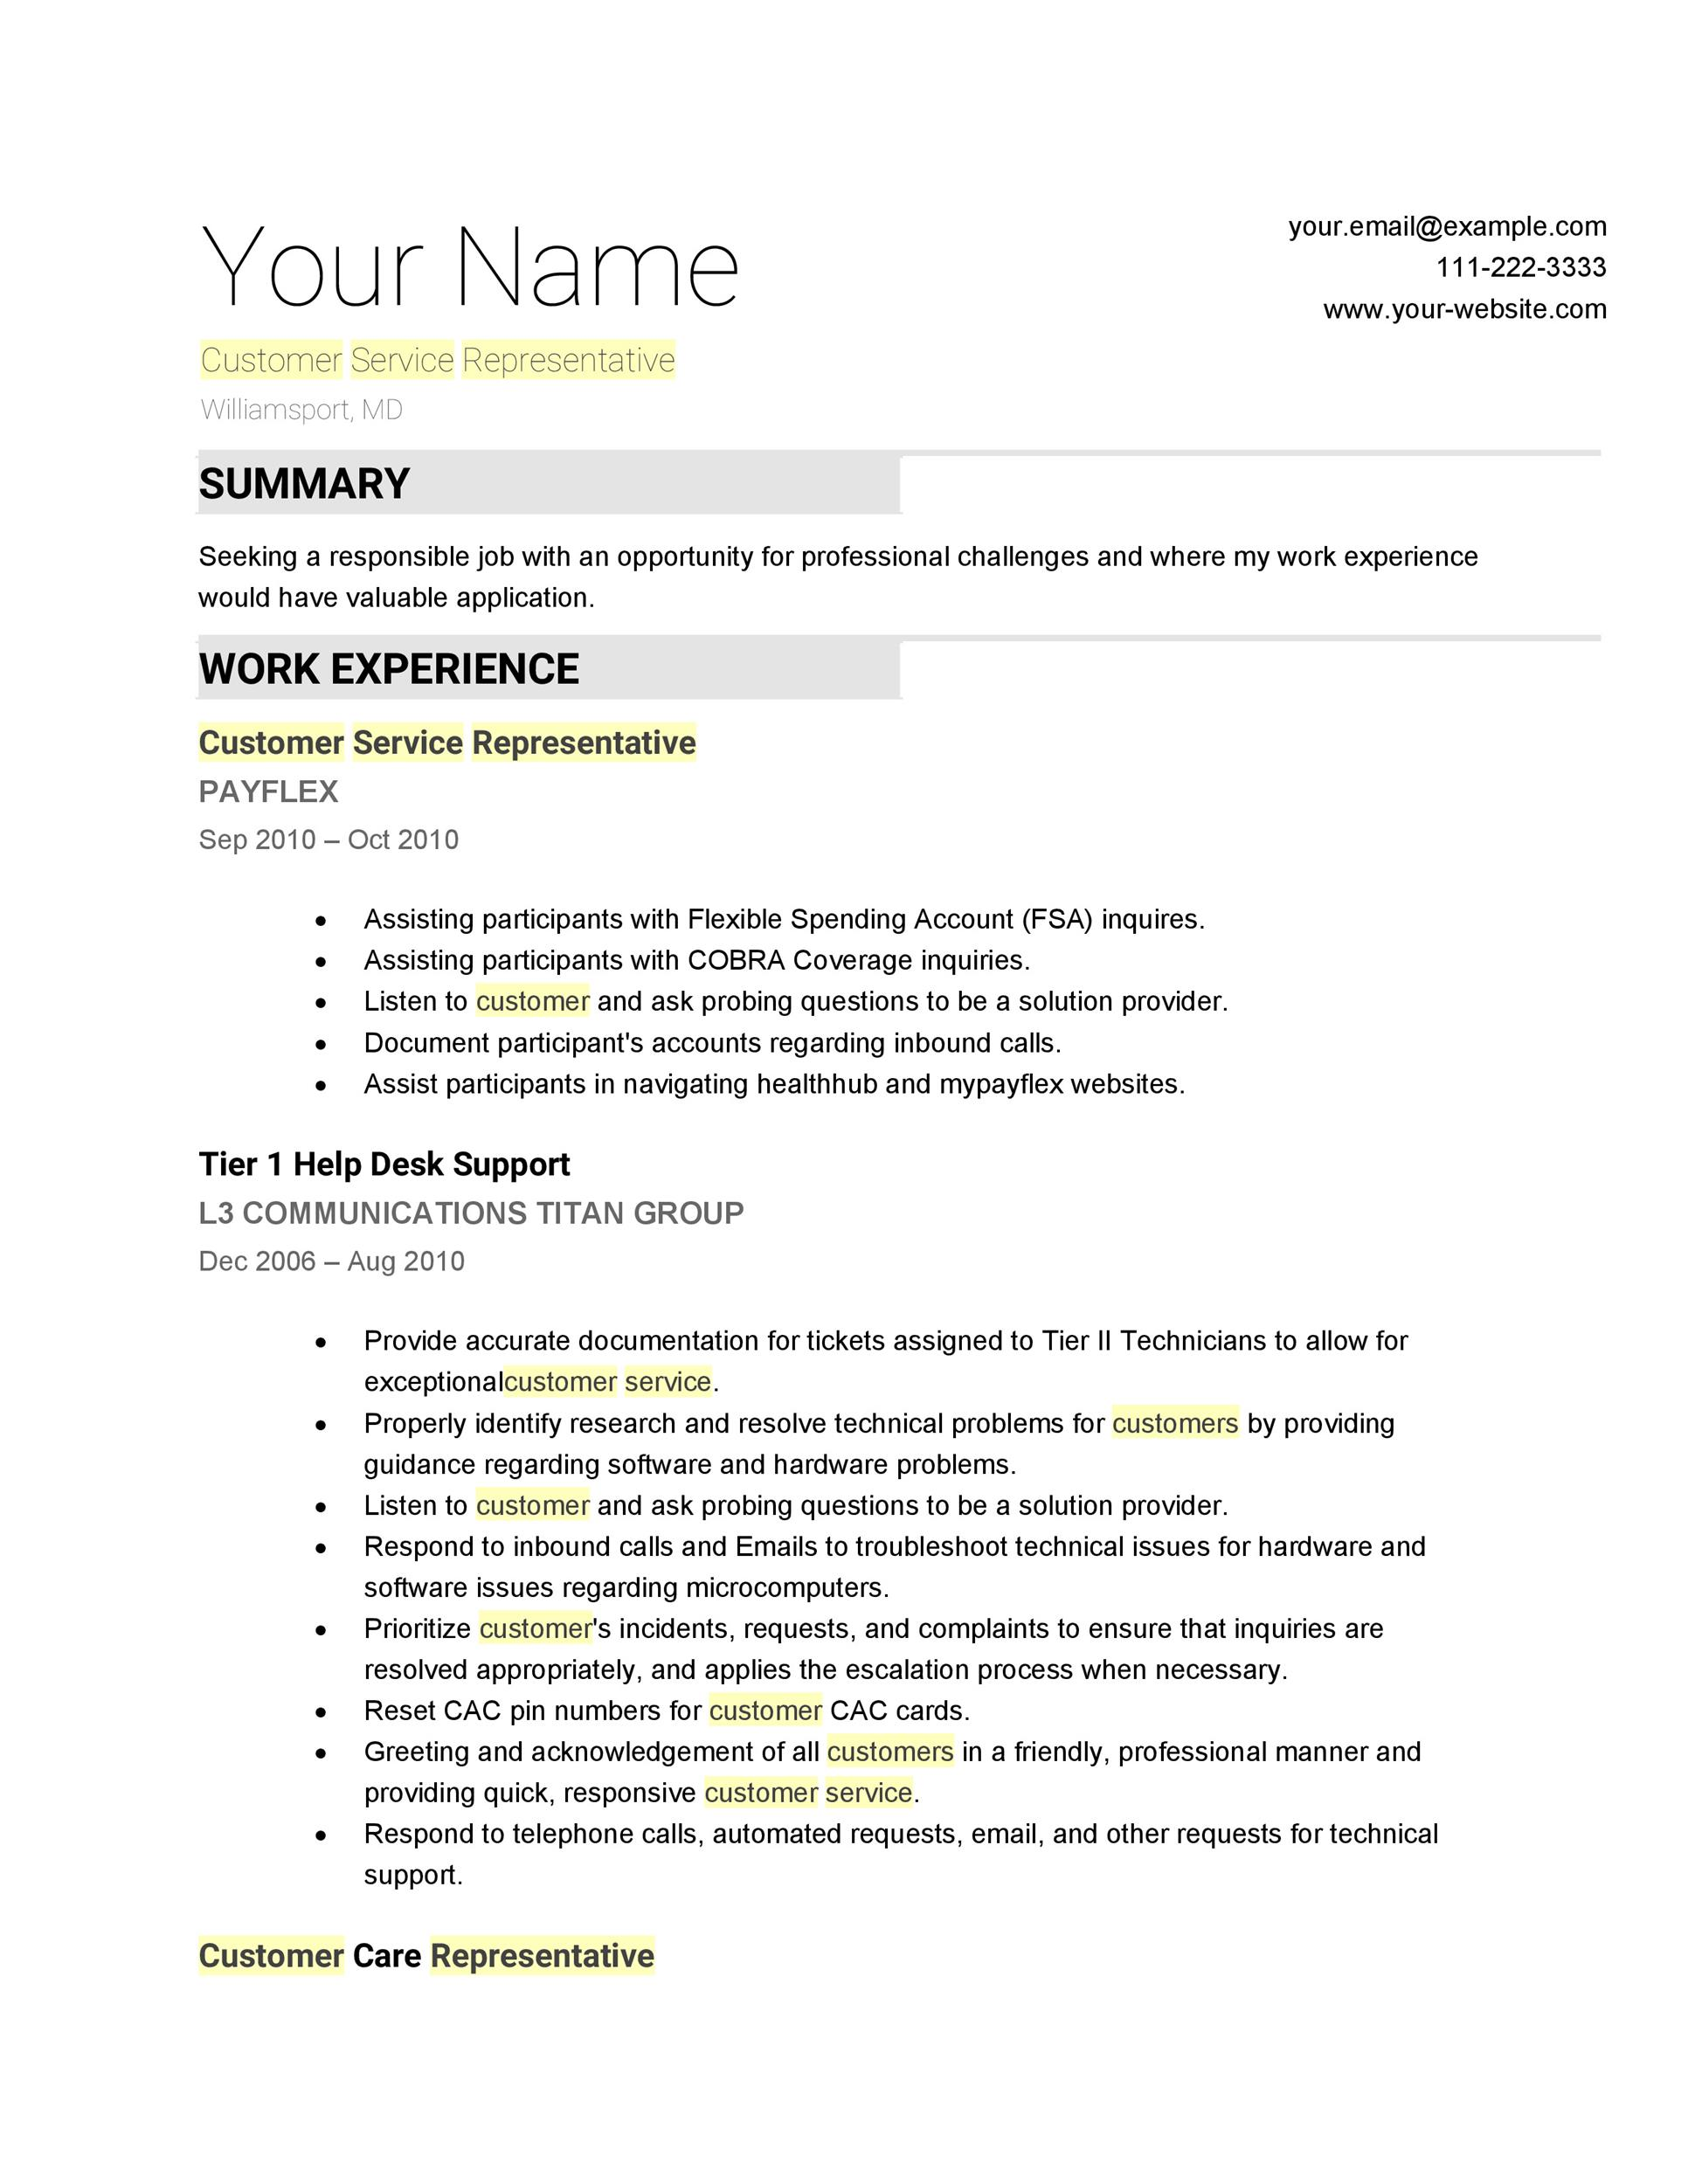 Free Customer Service Resume Template 10